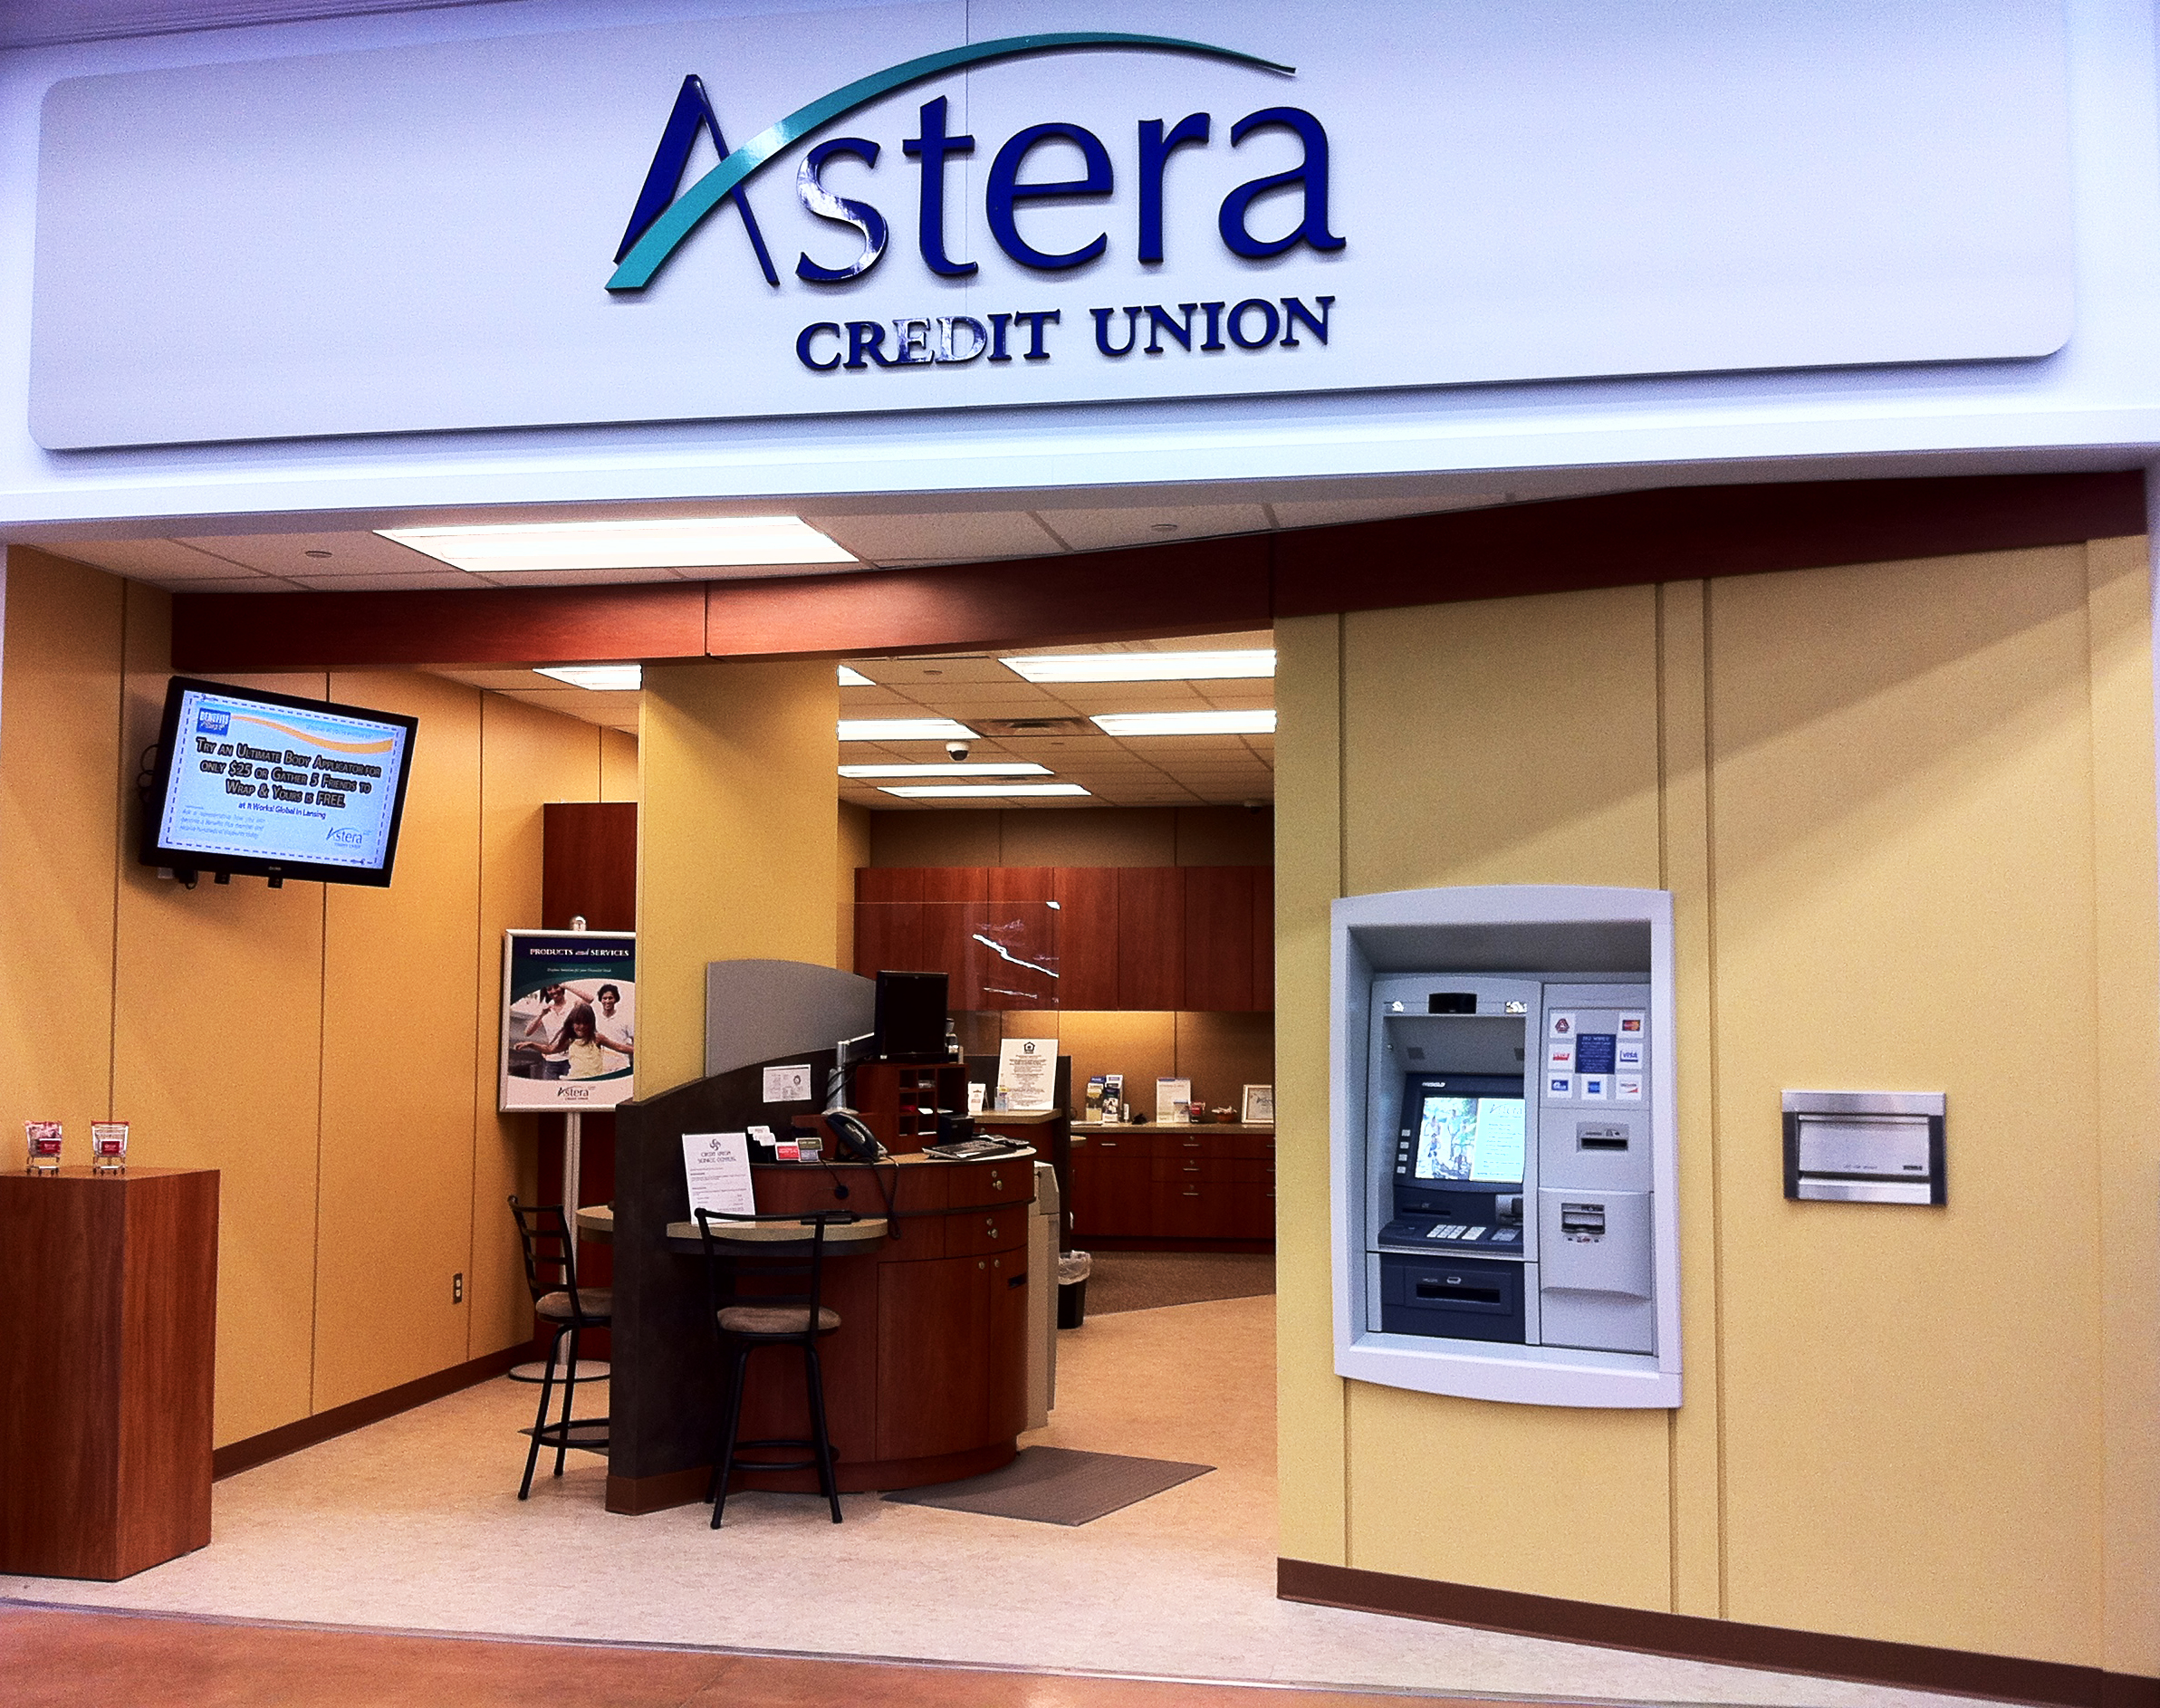 astera credit union 3062 s state rd, ionia, mi 48846 - yp